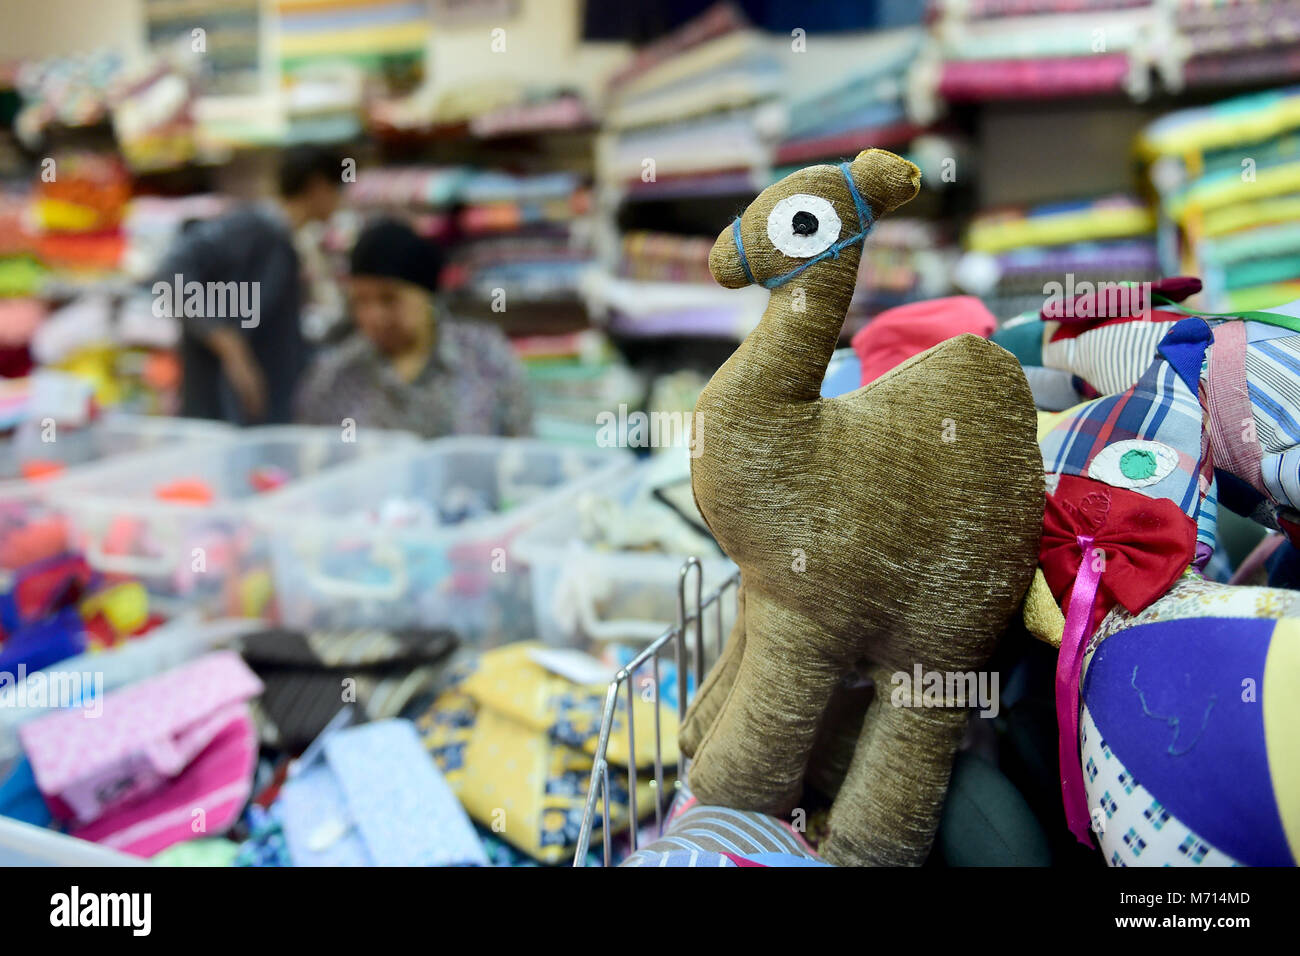 (180307) -- CAIRO, March 7, 2018 (Xinhua) -- Handicrafts made from recycled materials are displayed at a workshop - Stock Image